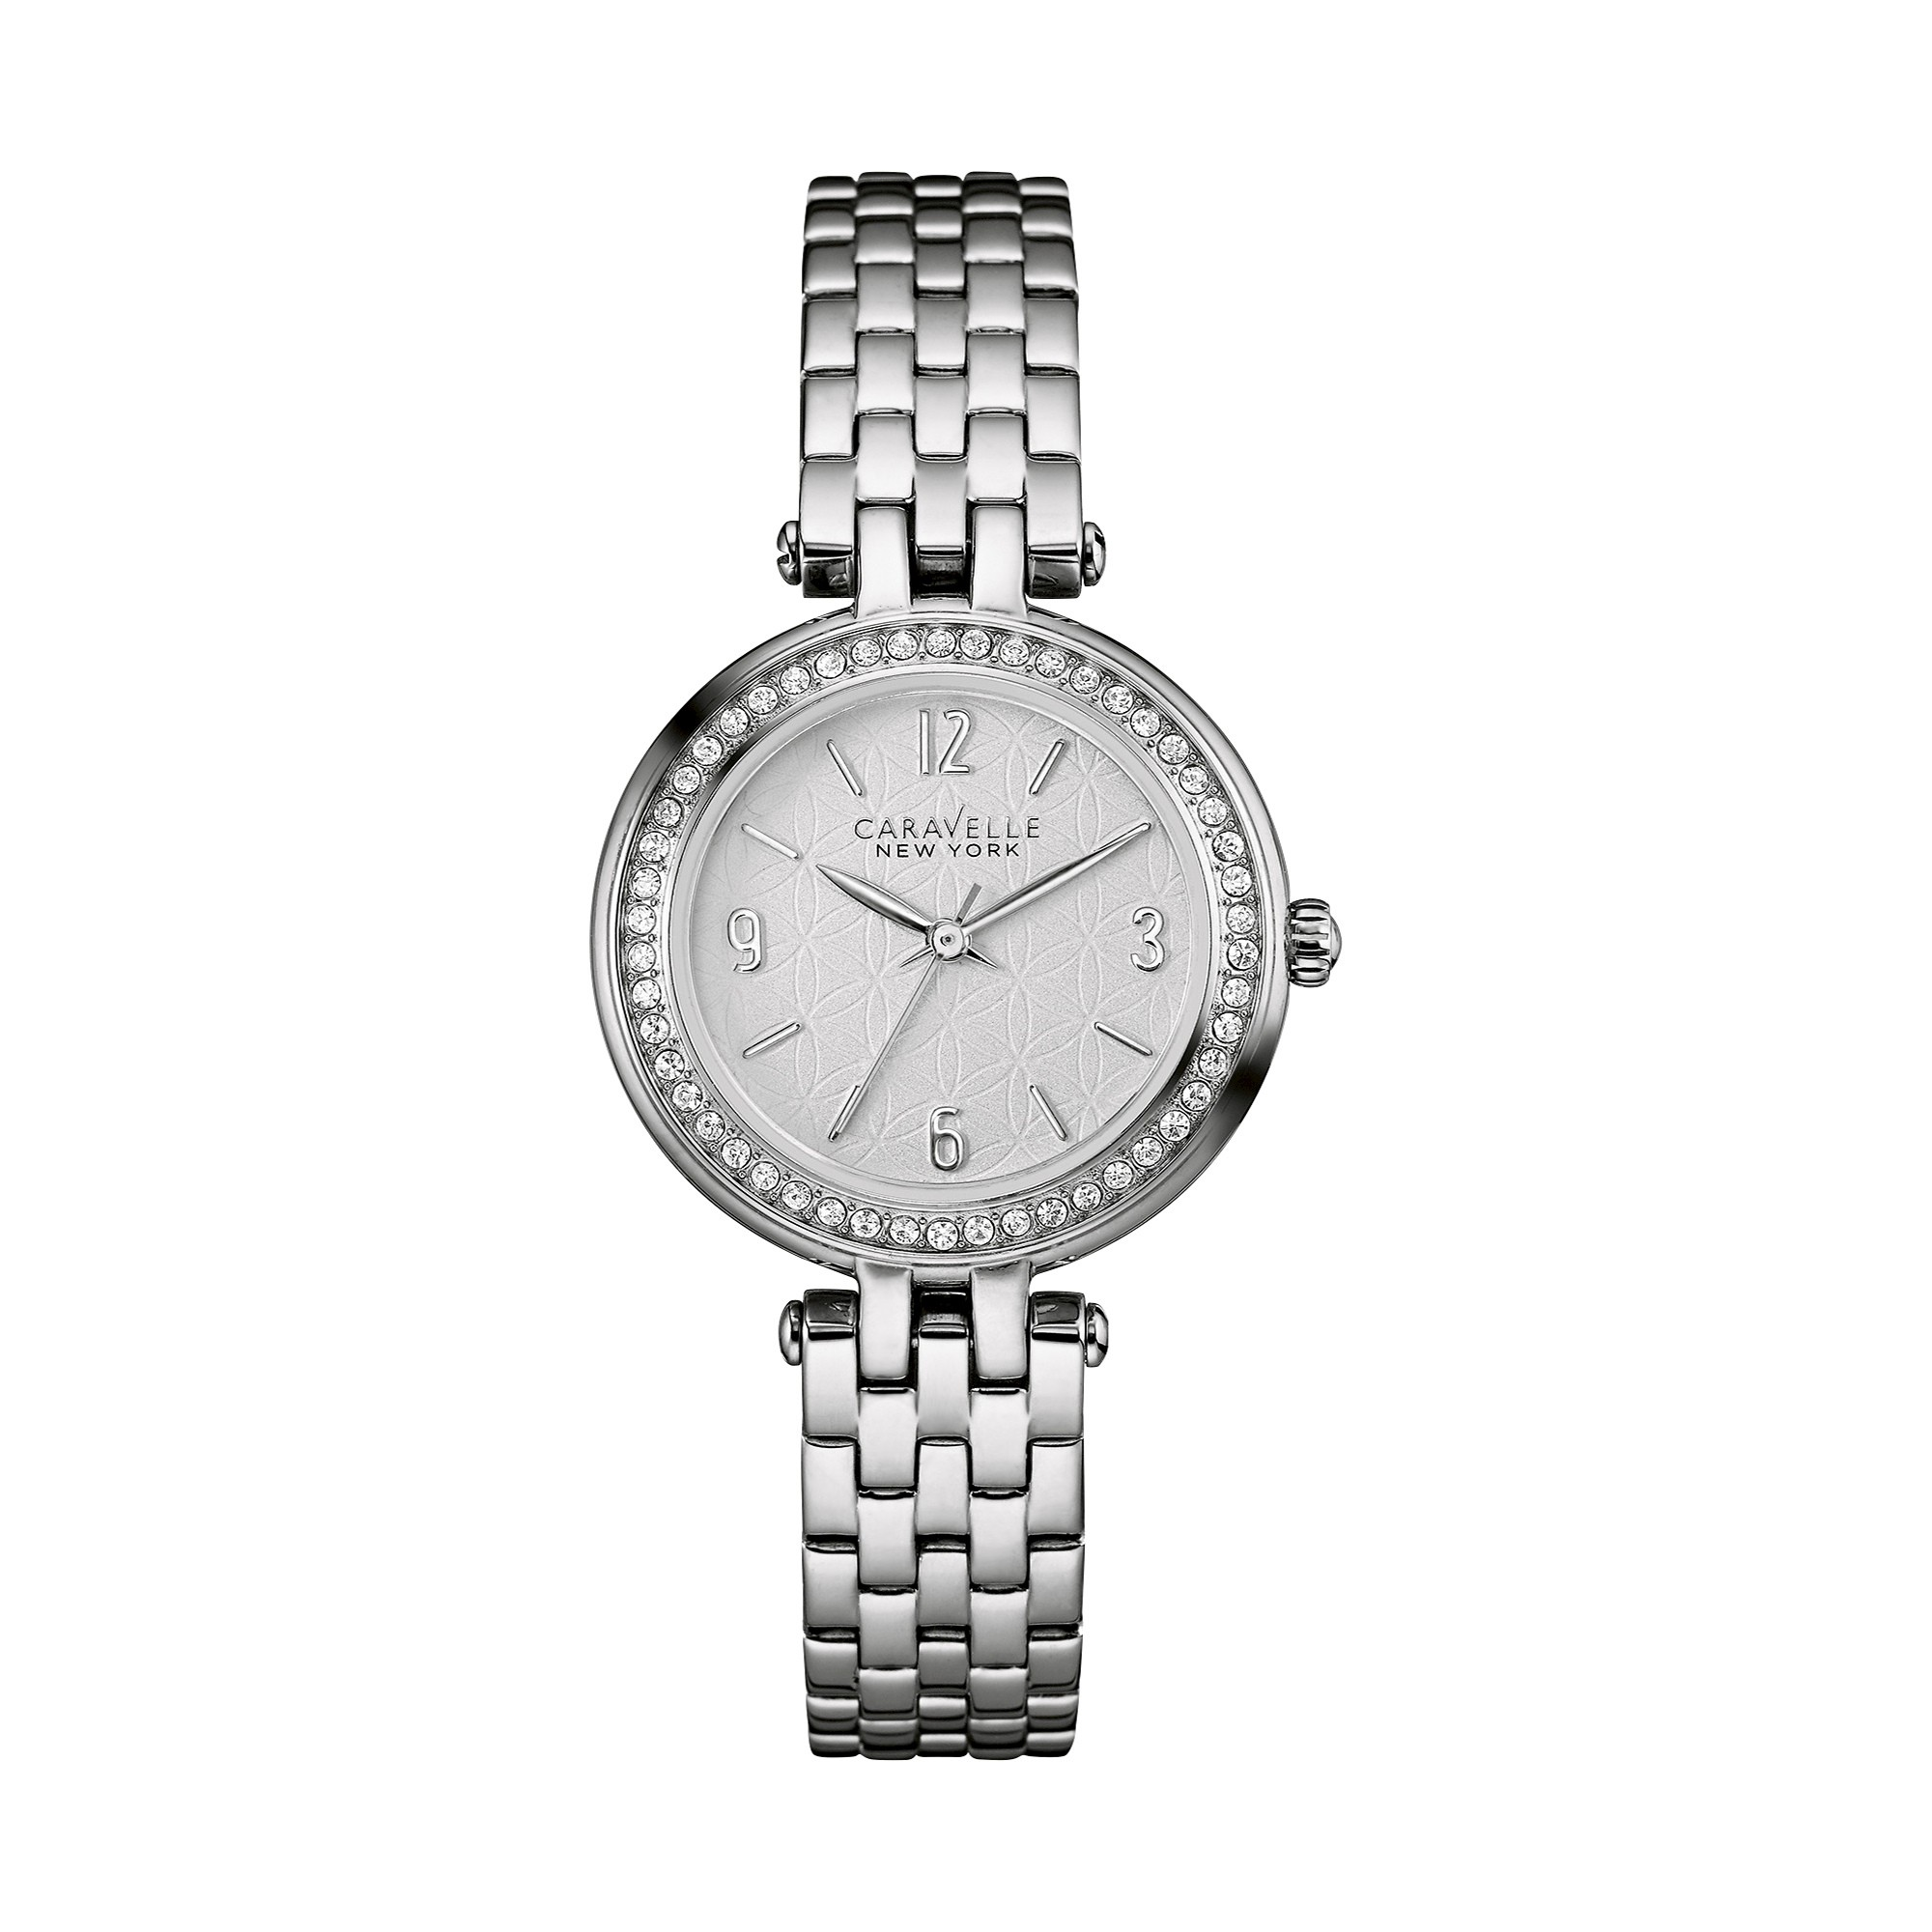 Caravelle New York Womens Dress Watch with White Dial 43L185 Bulova by Bulova